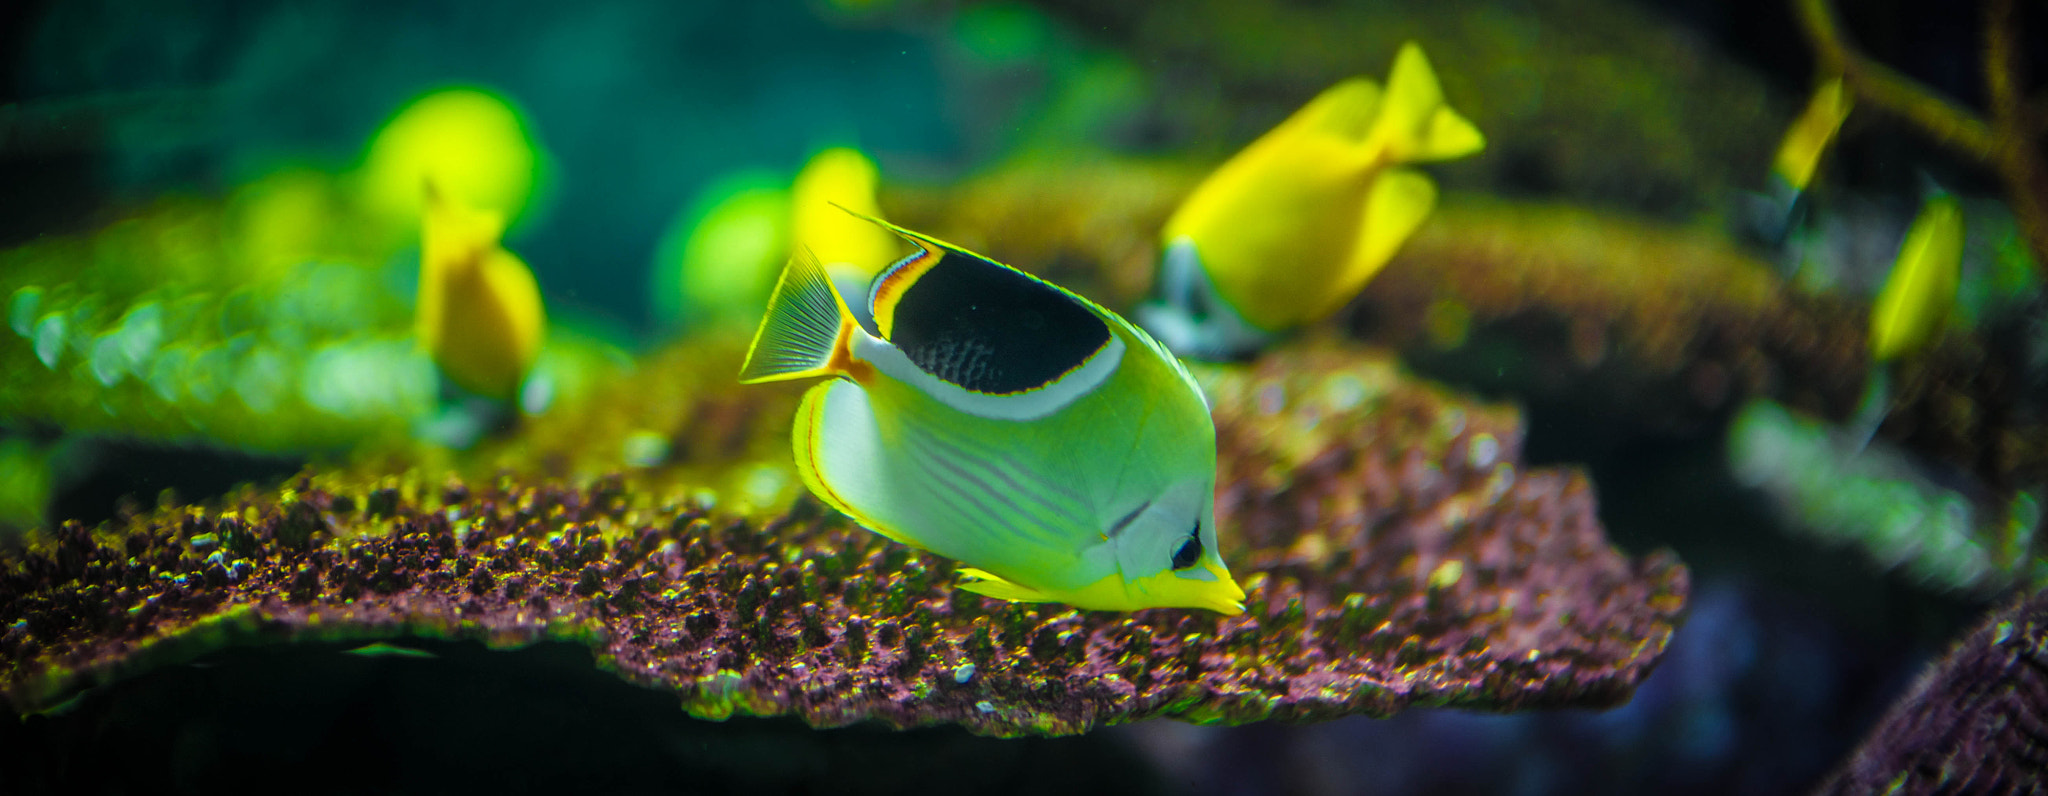 Photograph Yellow Fish by Tem Erdenebat on 500px